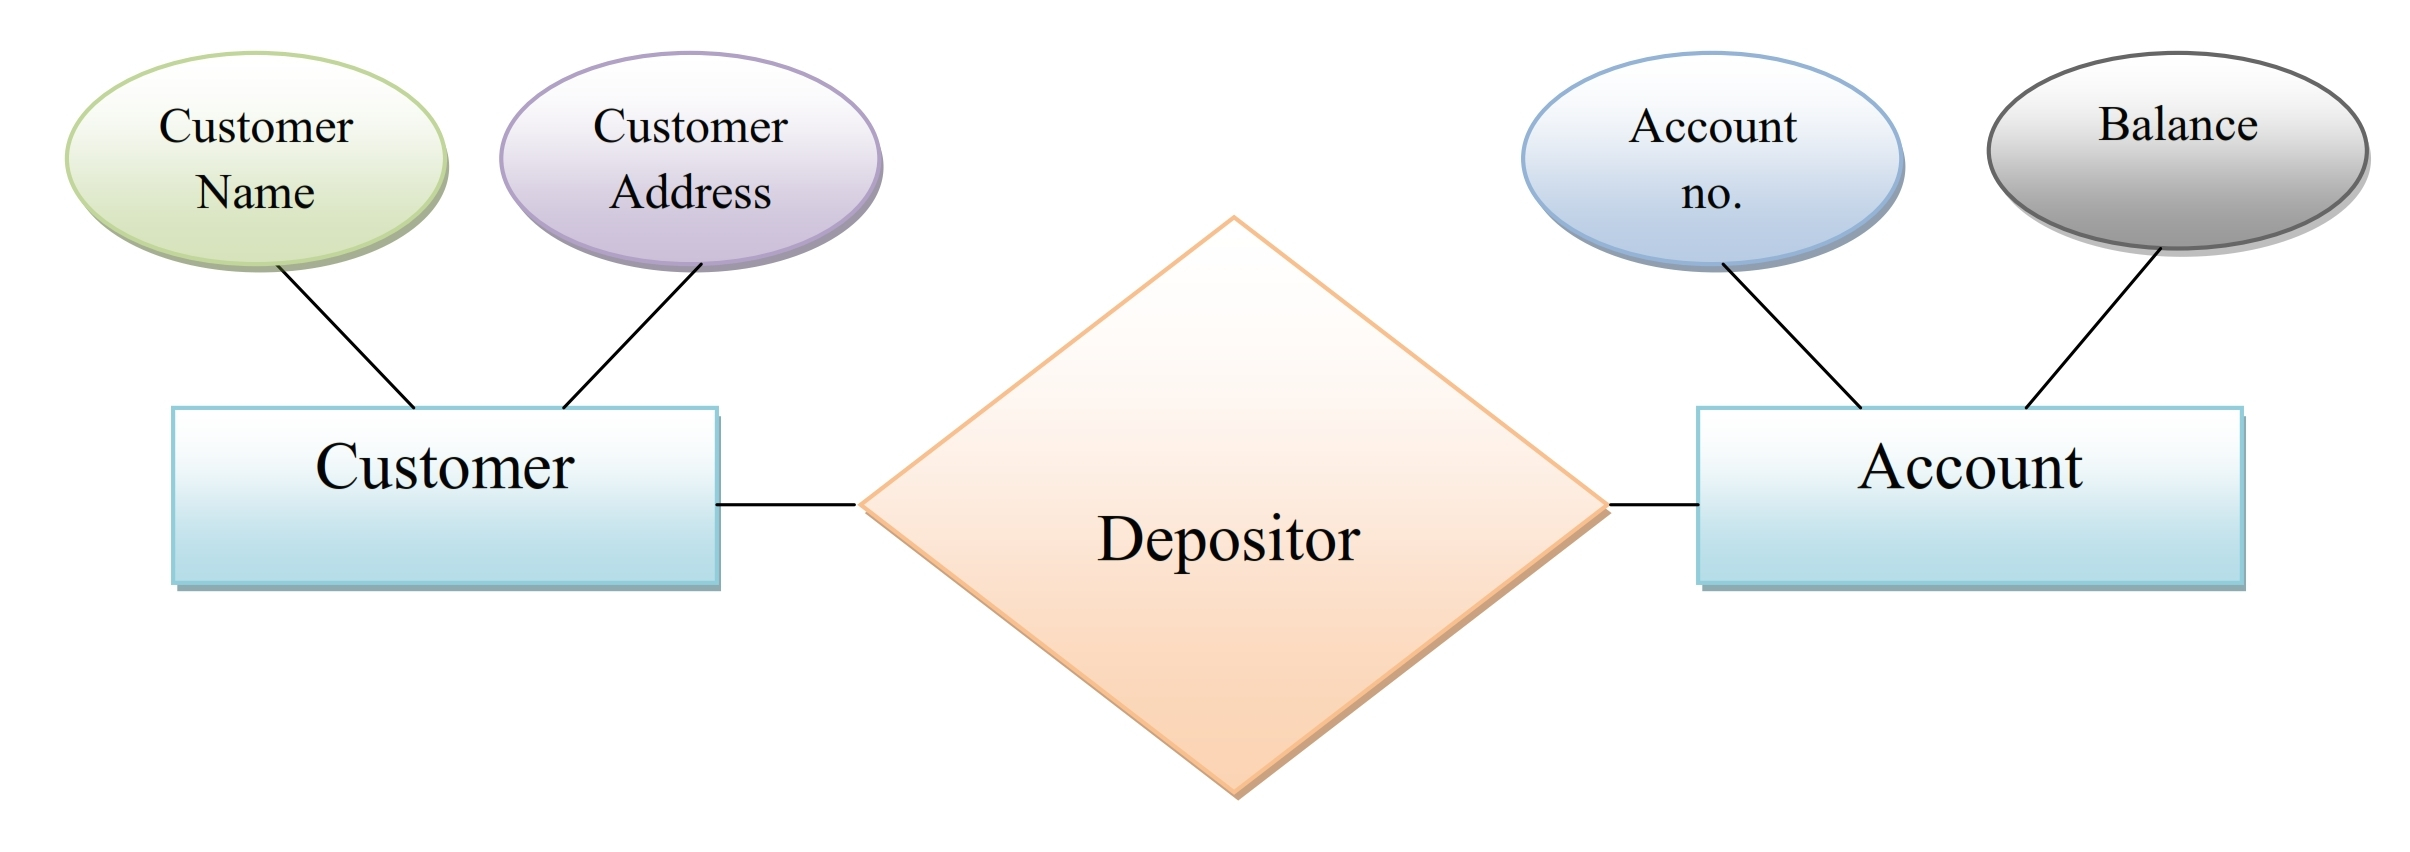 Simplynotes - Data Models And Their Types - Simplynotes in Er Model In Dbms Notes